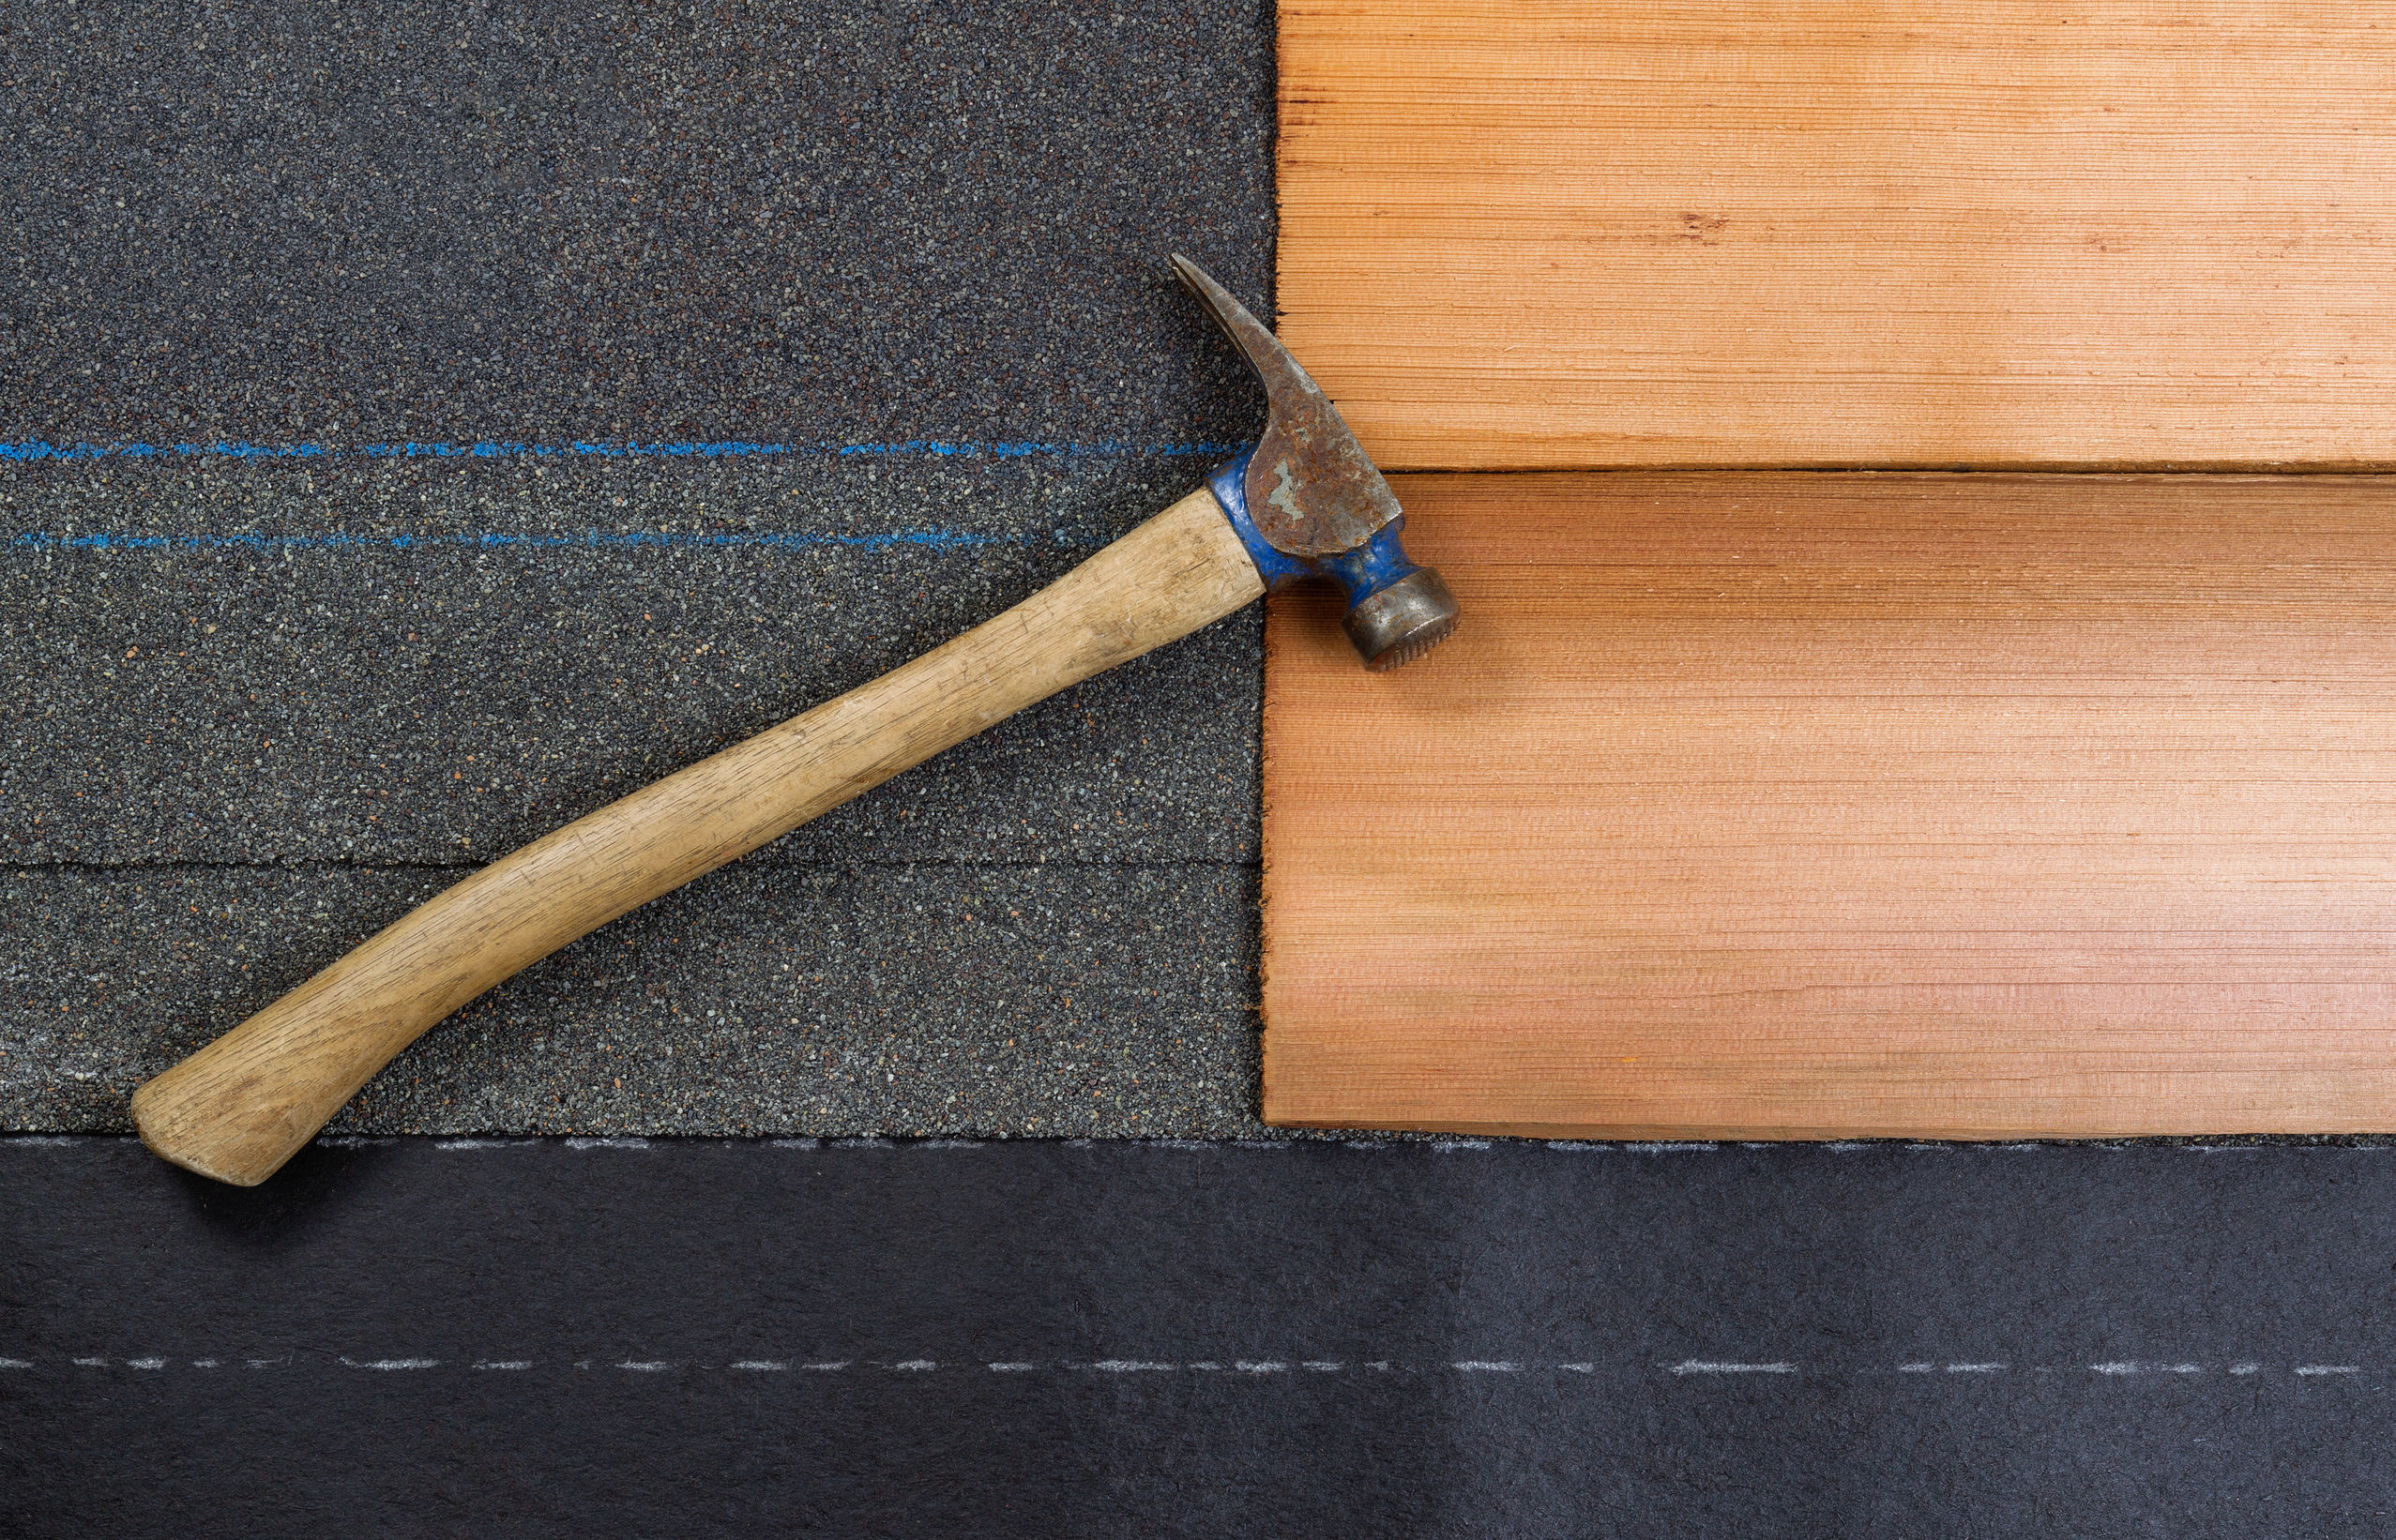 Roof Repair And Replacement Costs